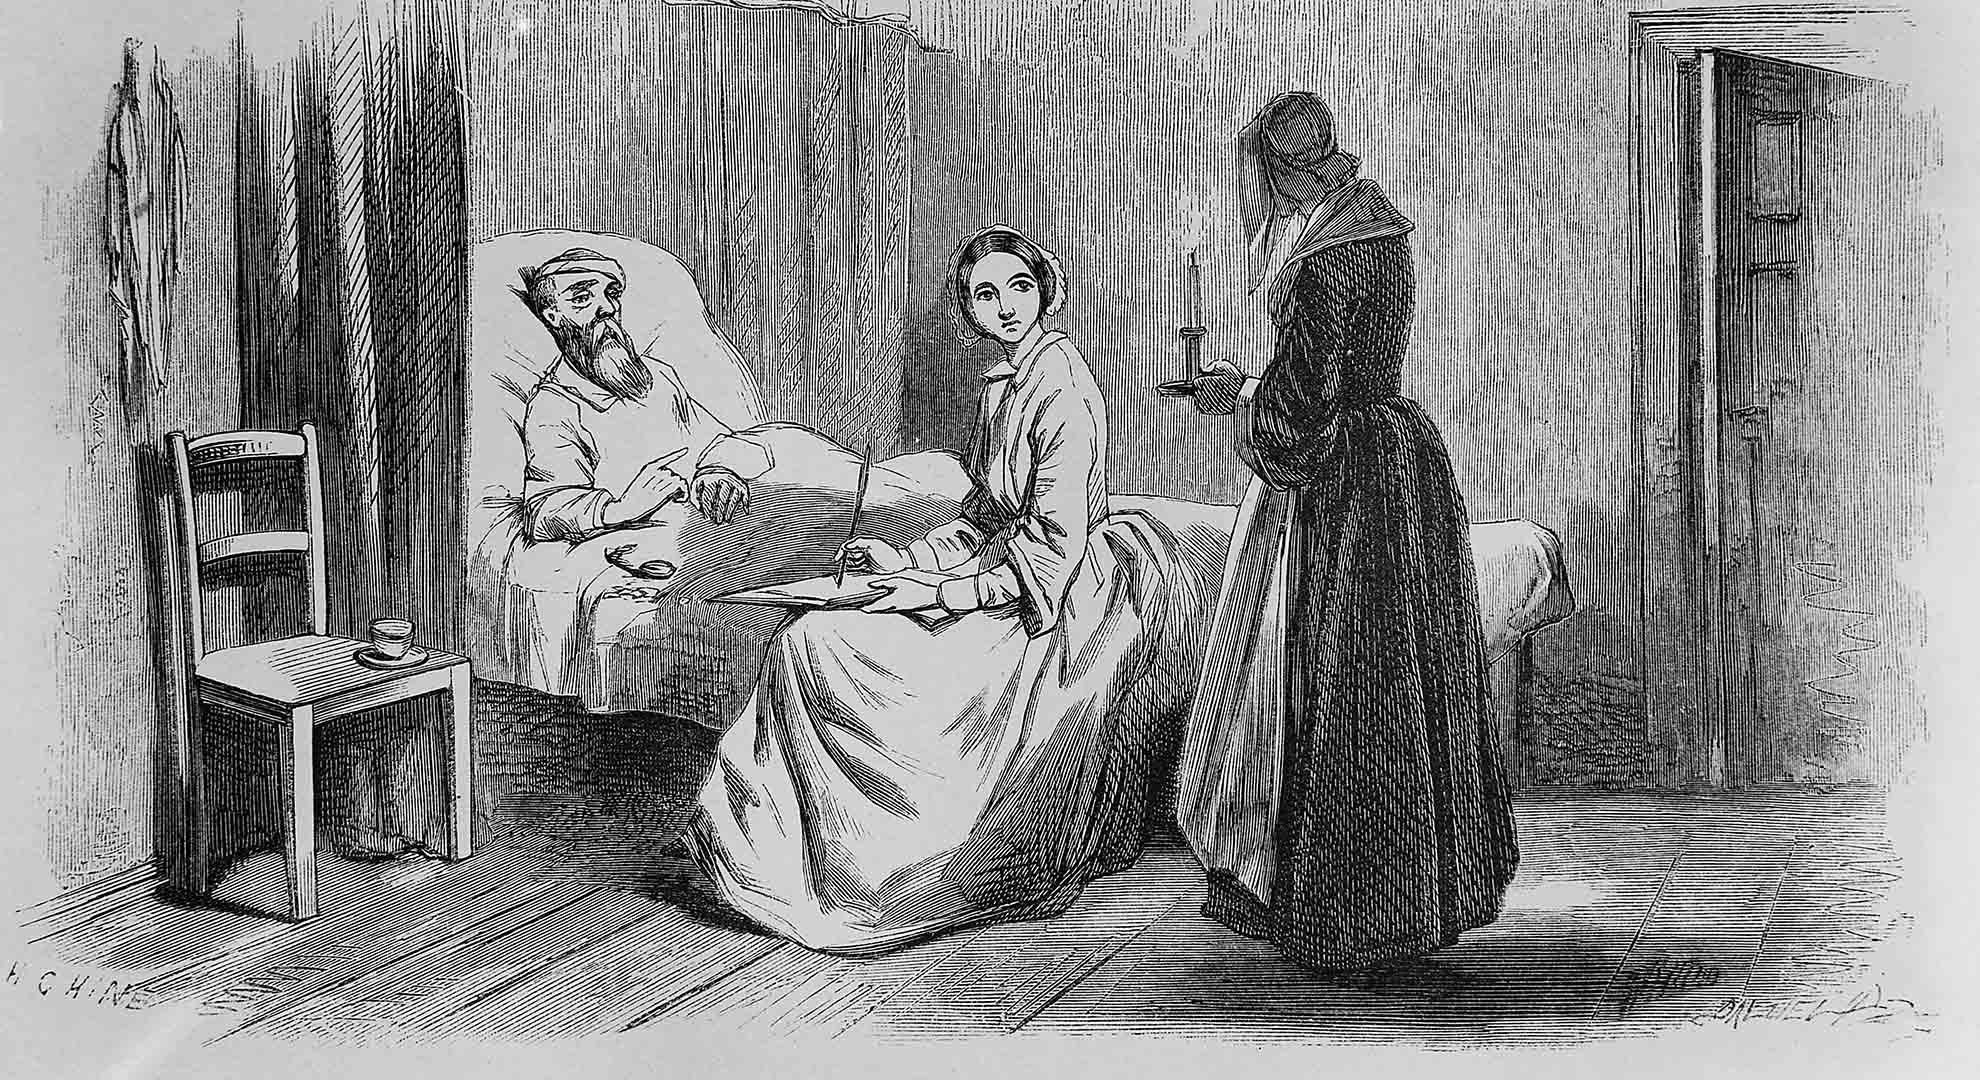 Florence Nightingale was a visionary in understanding the hospital architecture impact on patients' health.